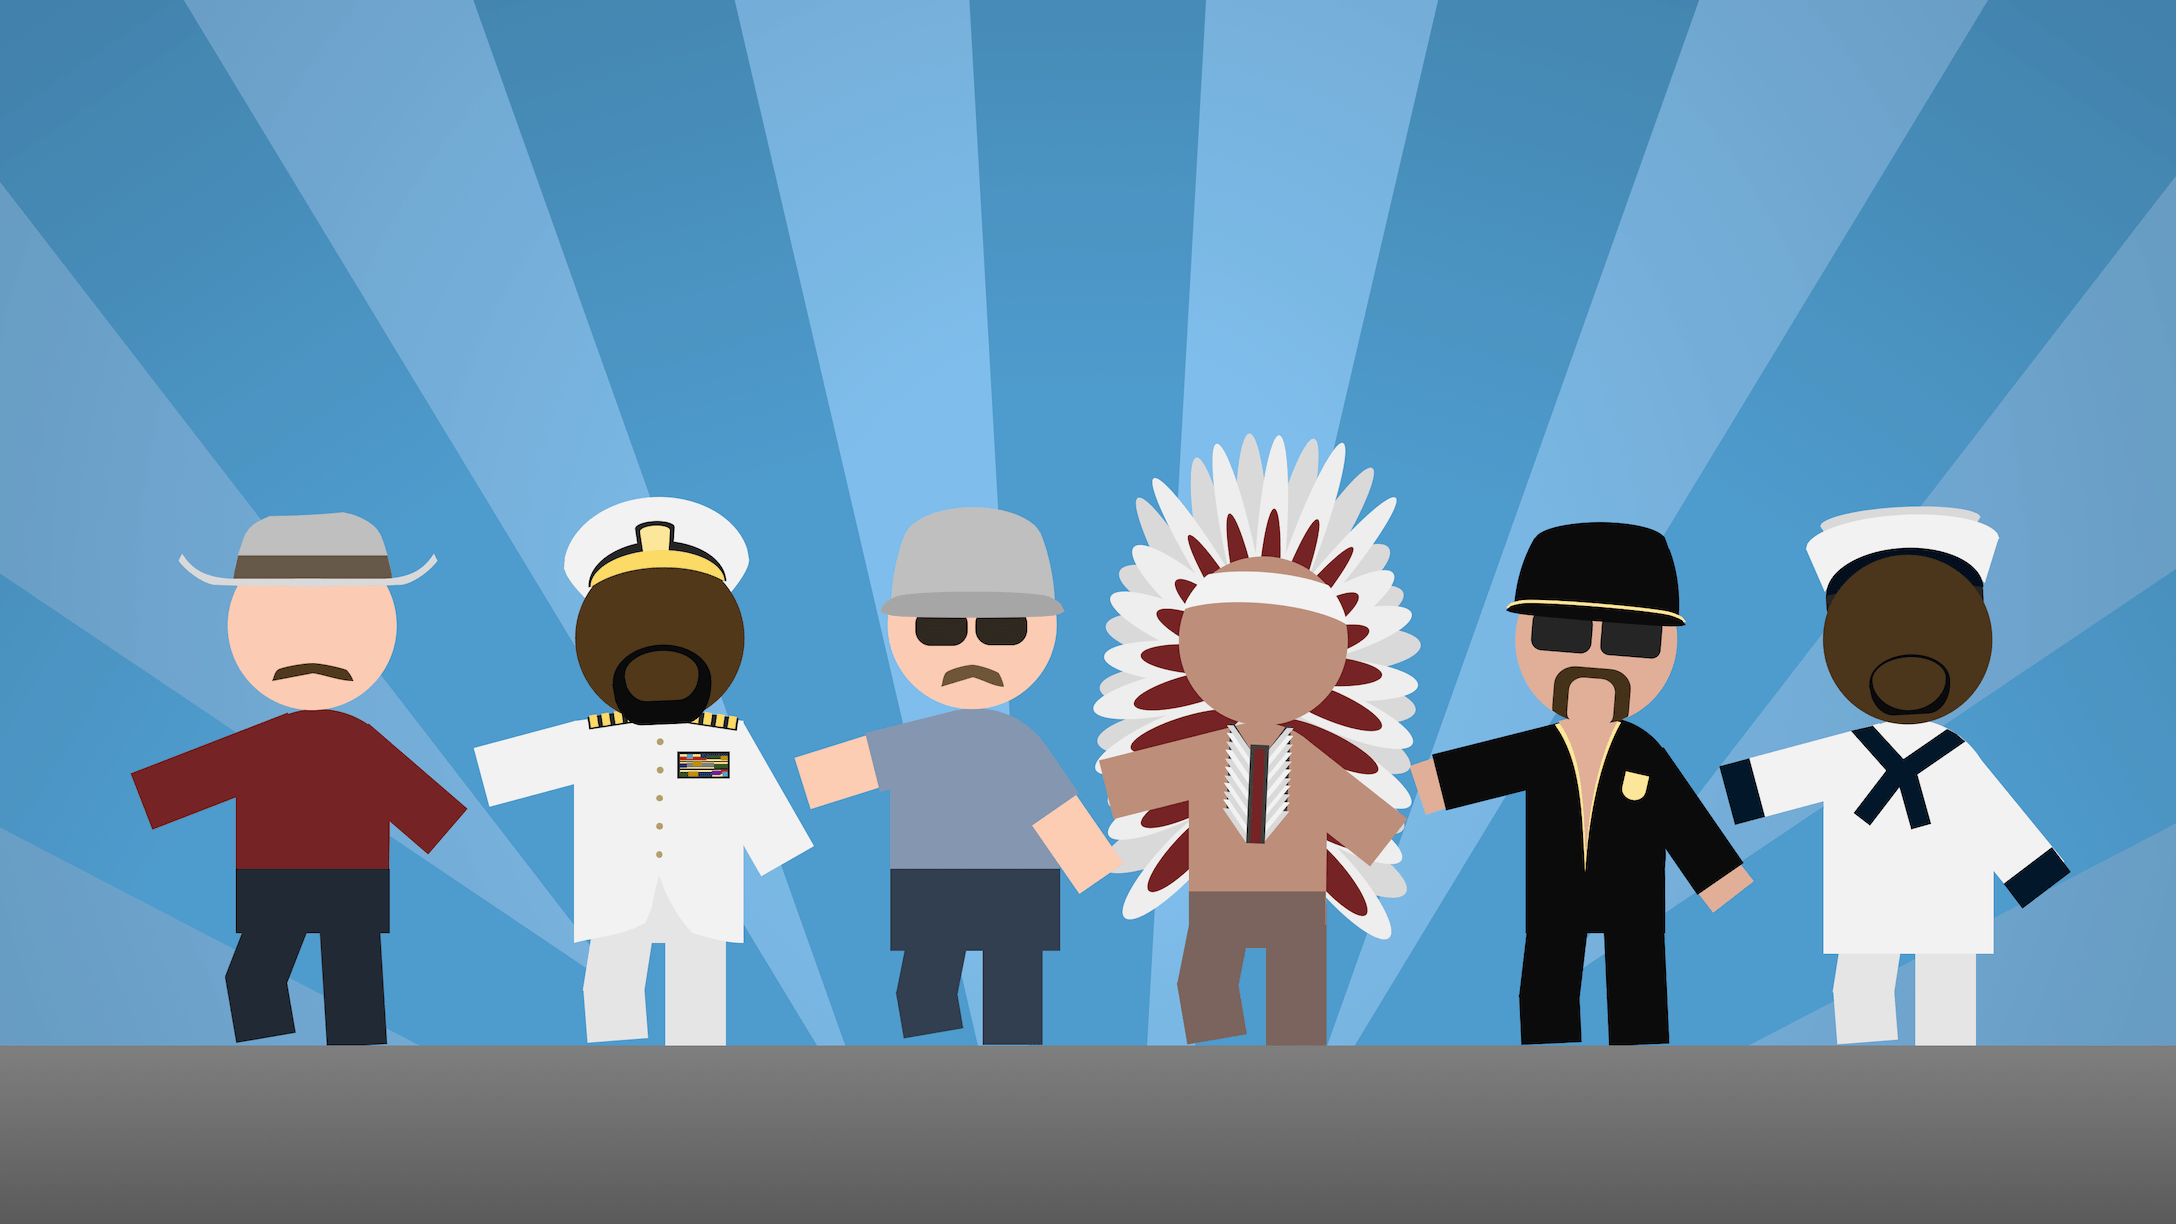 It's the Village People